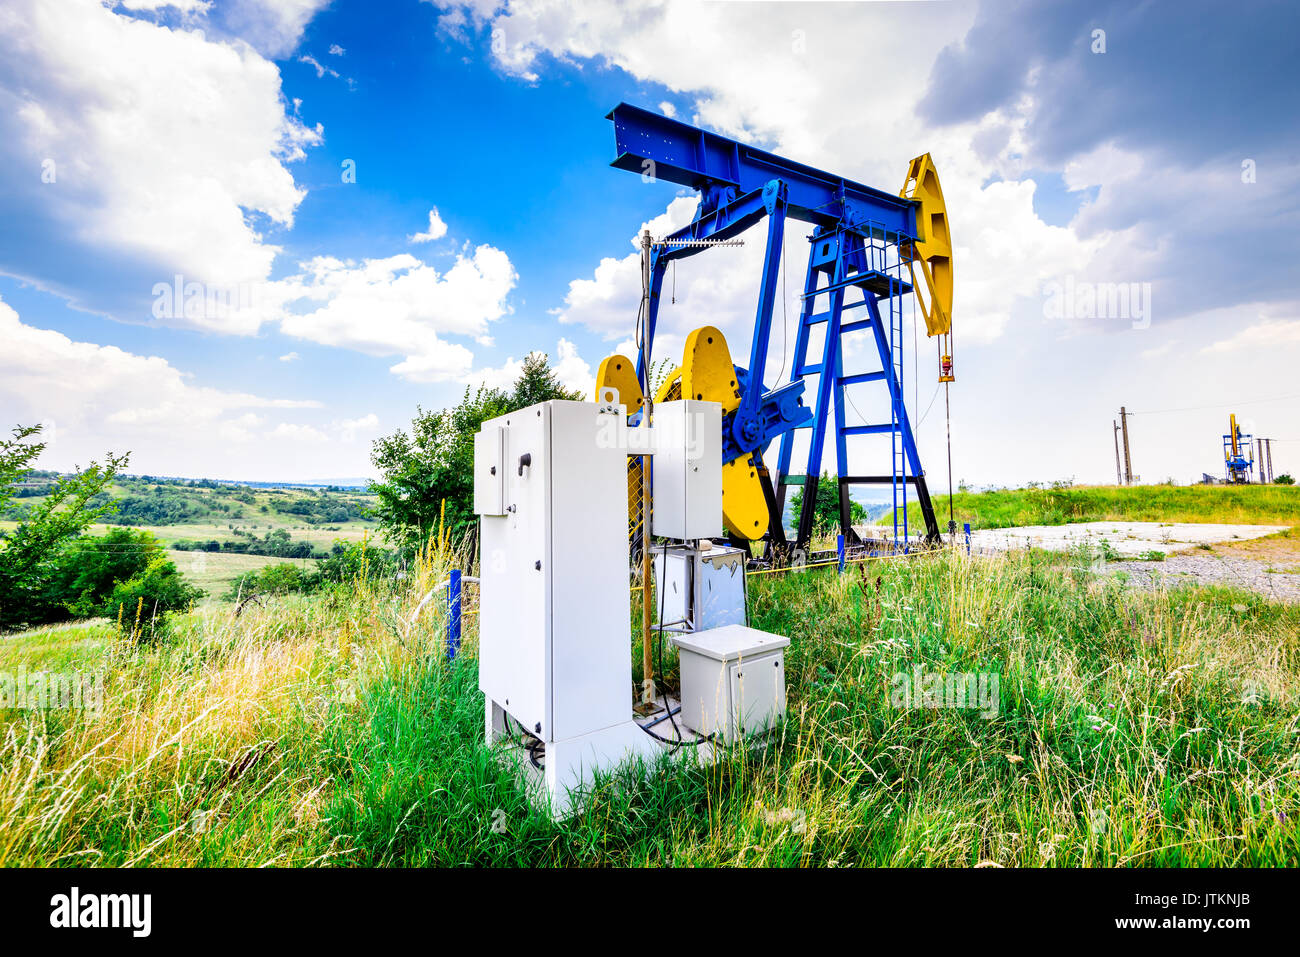 plc application in oil and gas industry